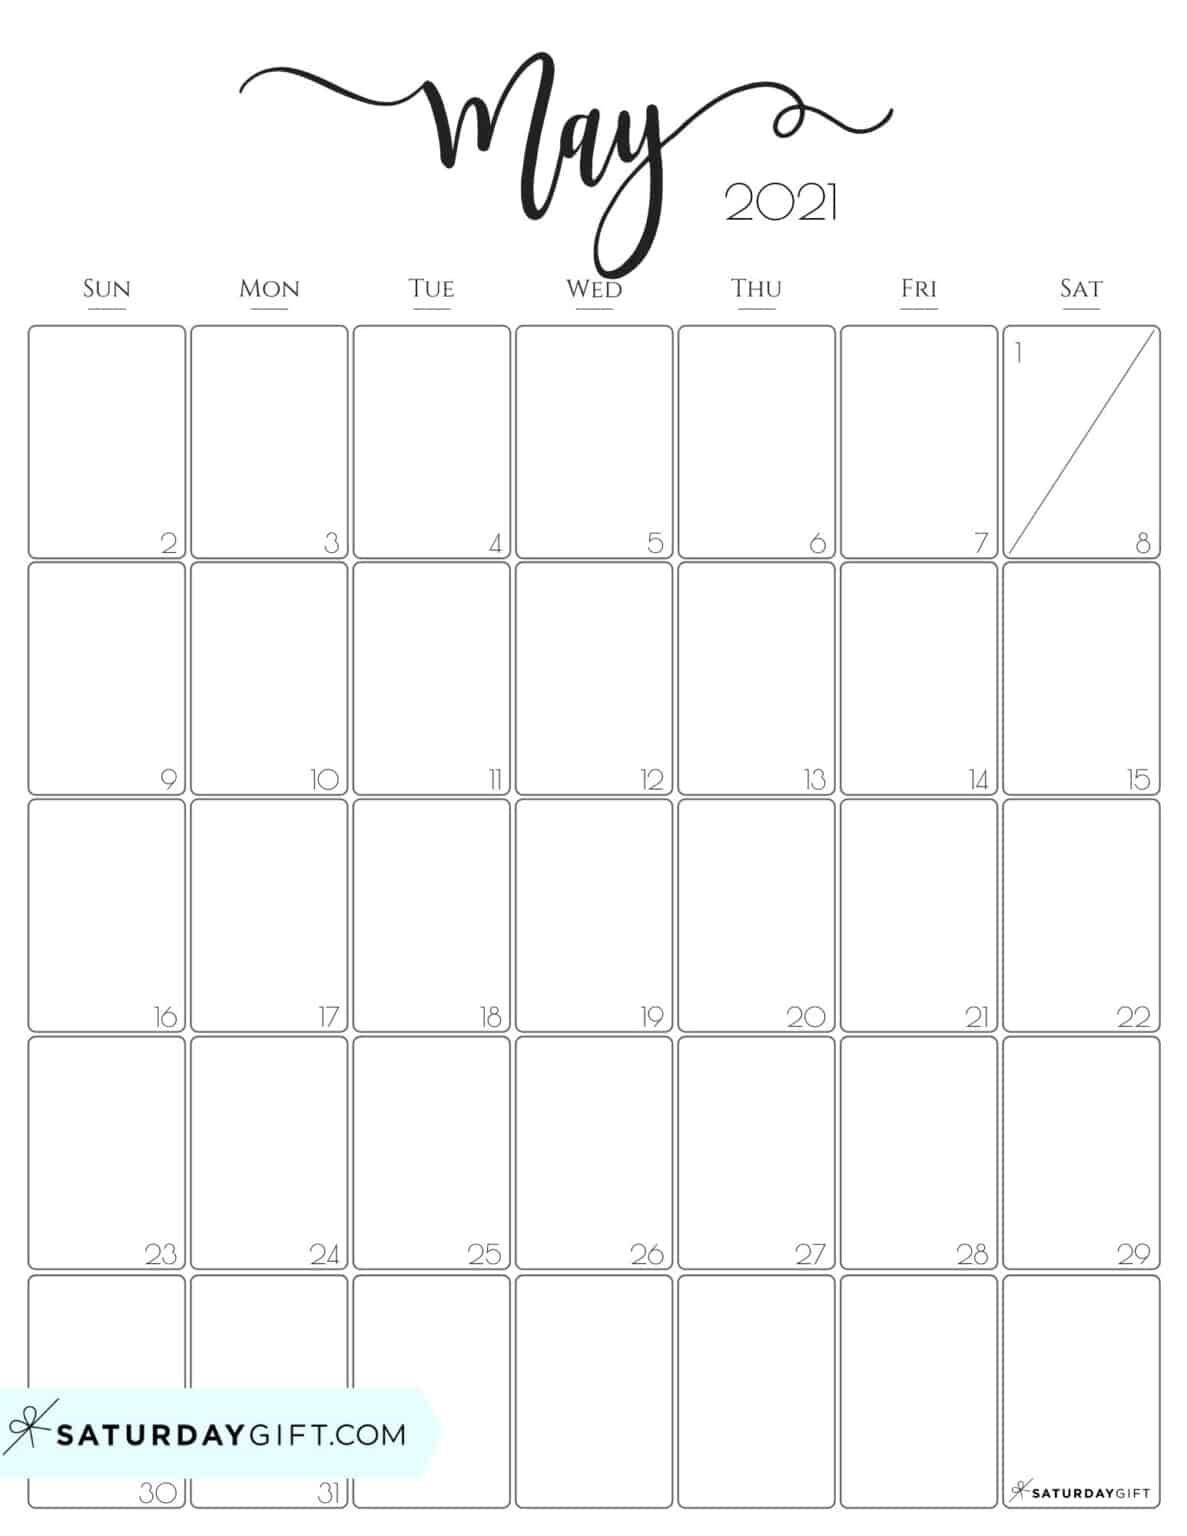 May 2021 Calendar Cute (& Free!) Printable May 2021 Calendar | SaturdayGift